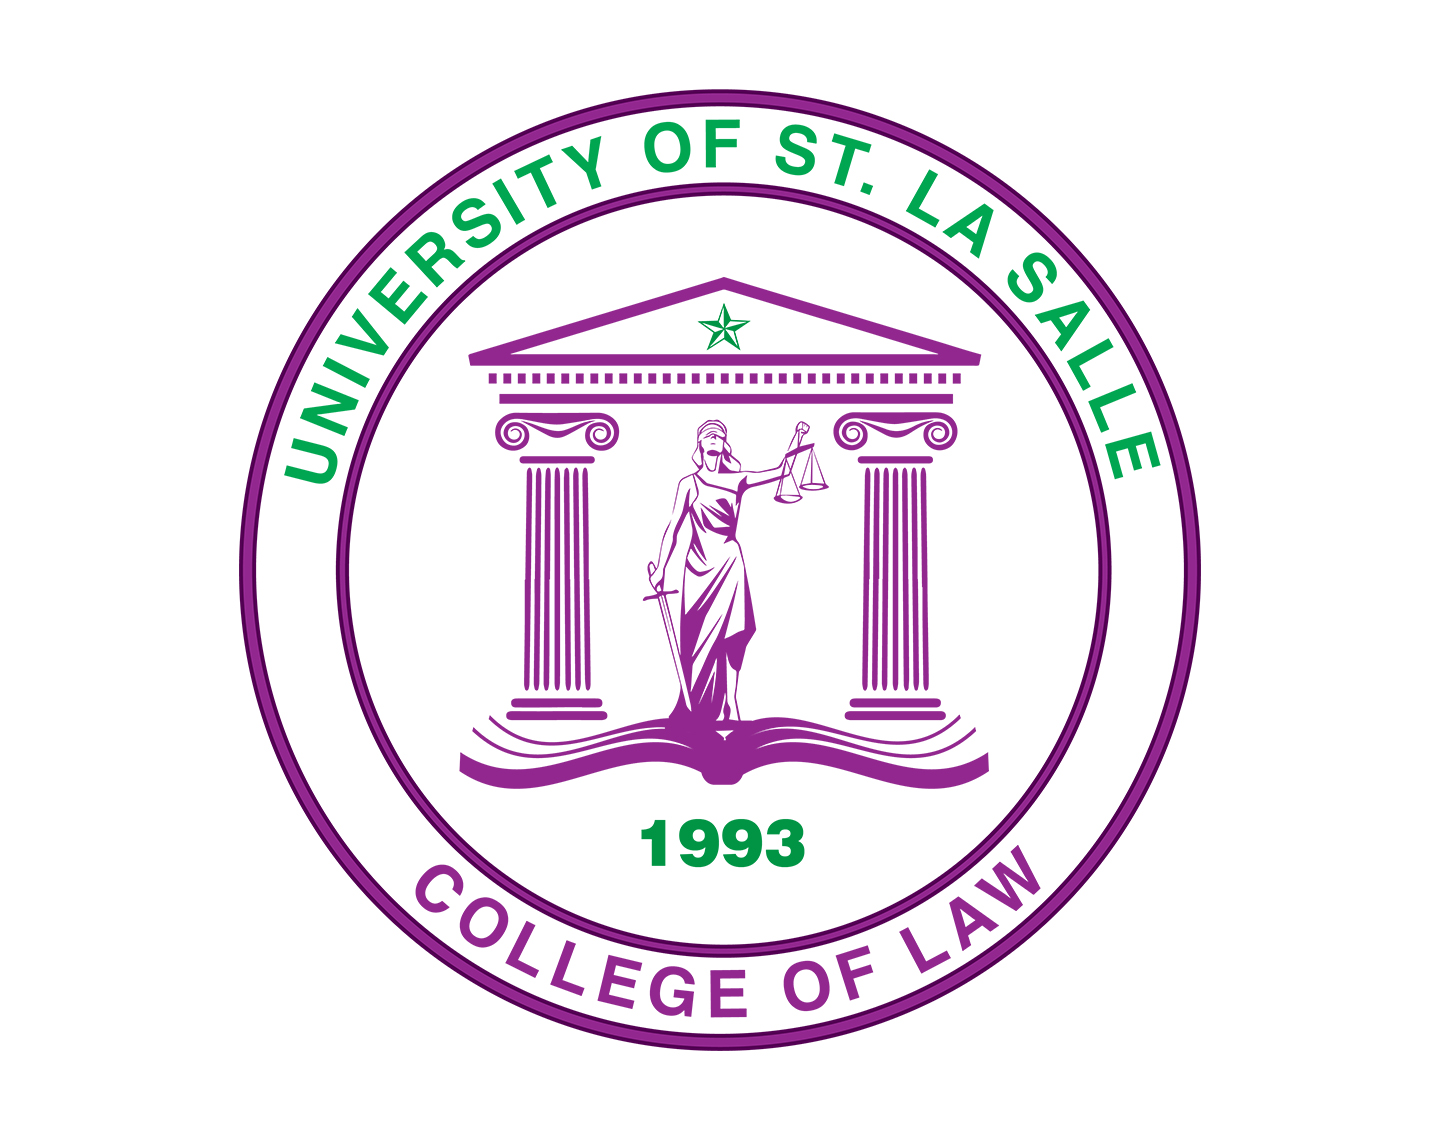 USLS-College-of-Law-Schedule-of-Tuition-and-Other-School-Fees-for-AY-2021-2022.jpg